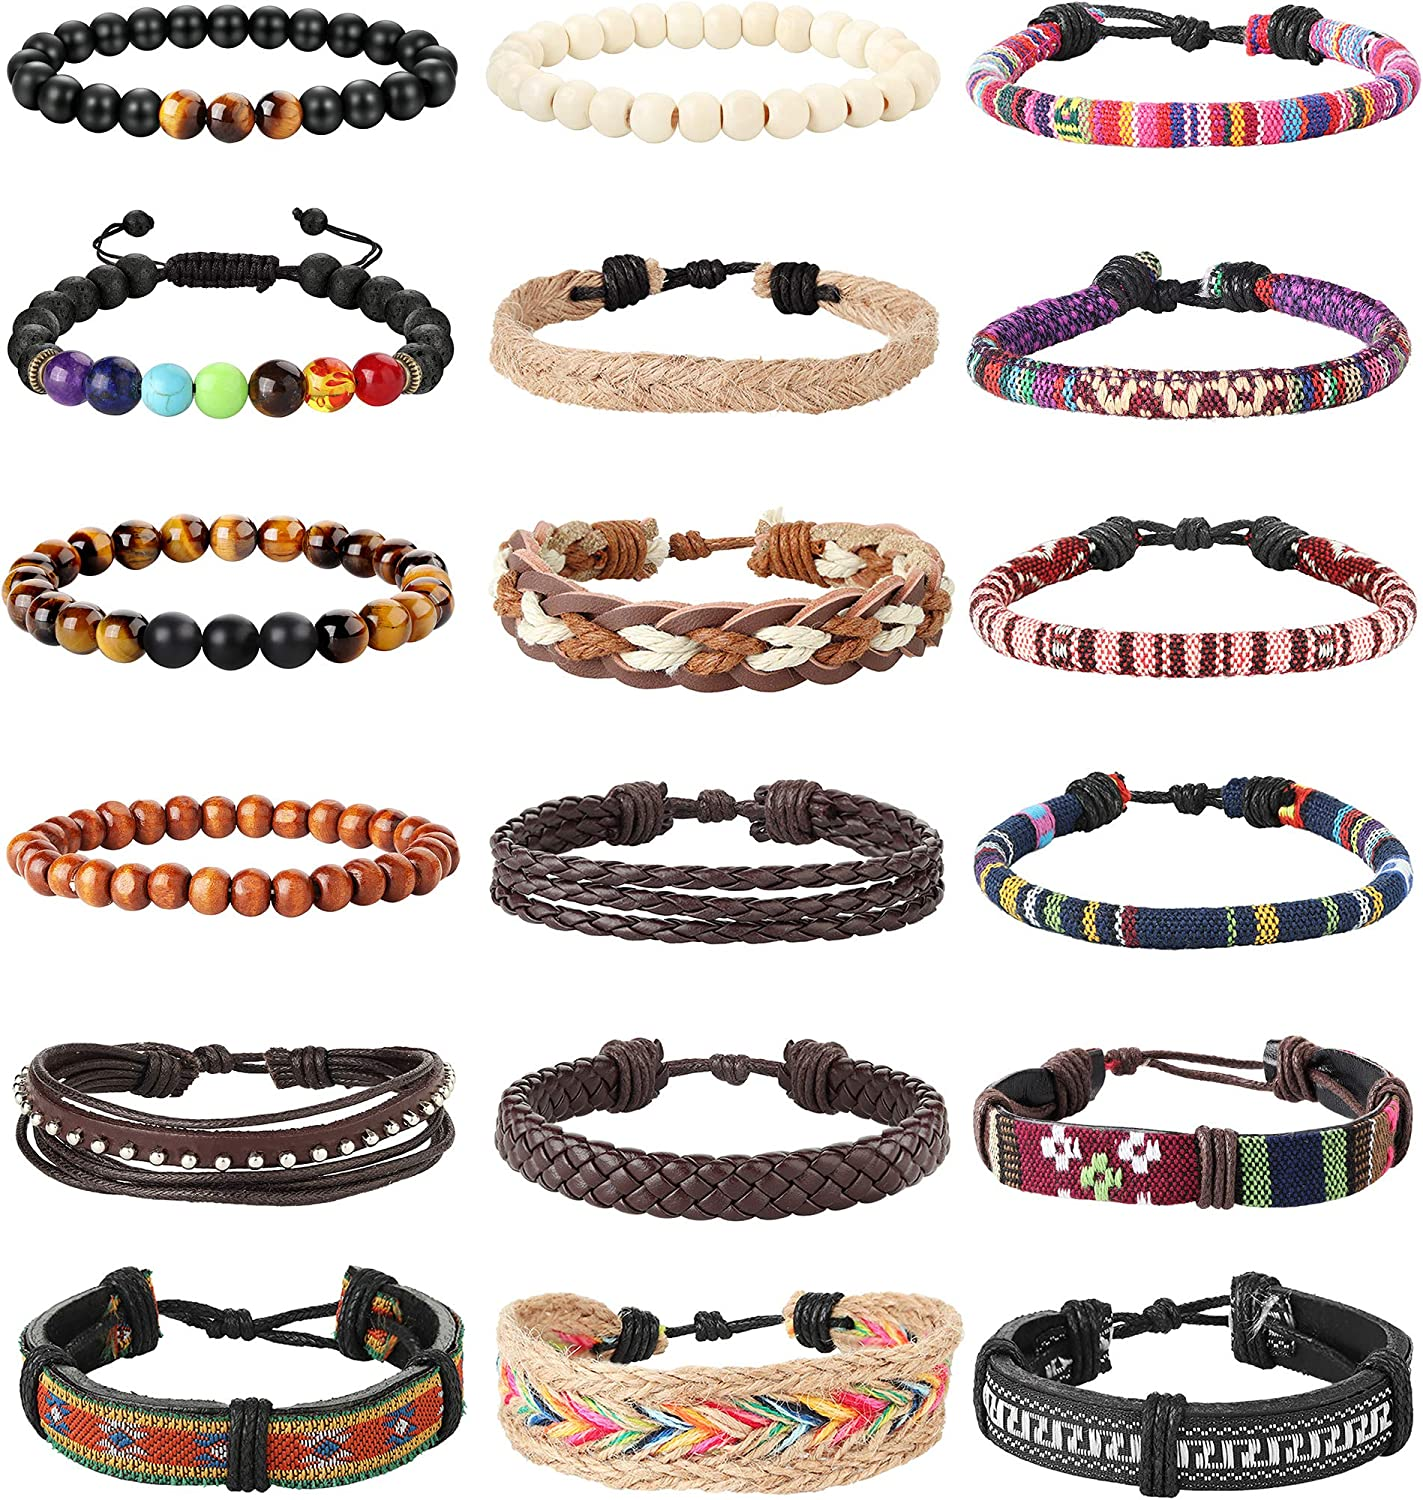 LOLIAS 18Pcs Leather Chakra Bead Tribal Bracelet for Men Women Charm Ethnic Wood Beaded Hemp Bracelets Boho Wristbands